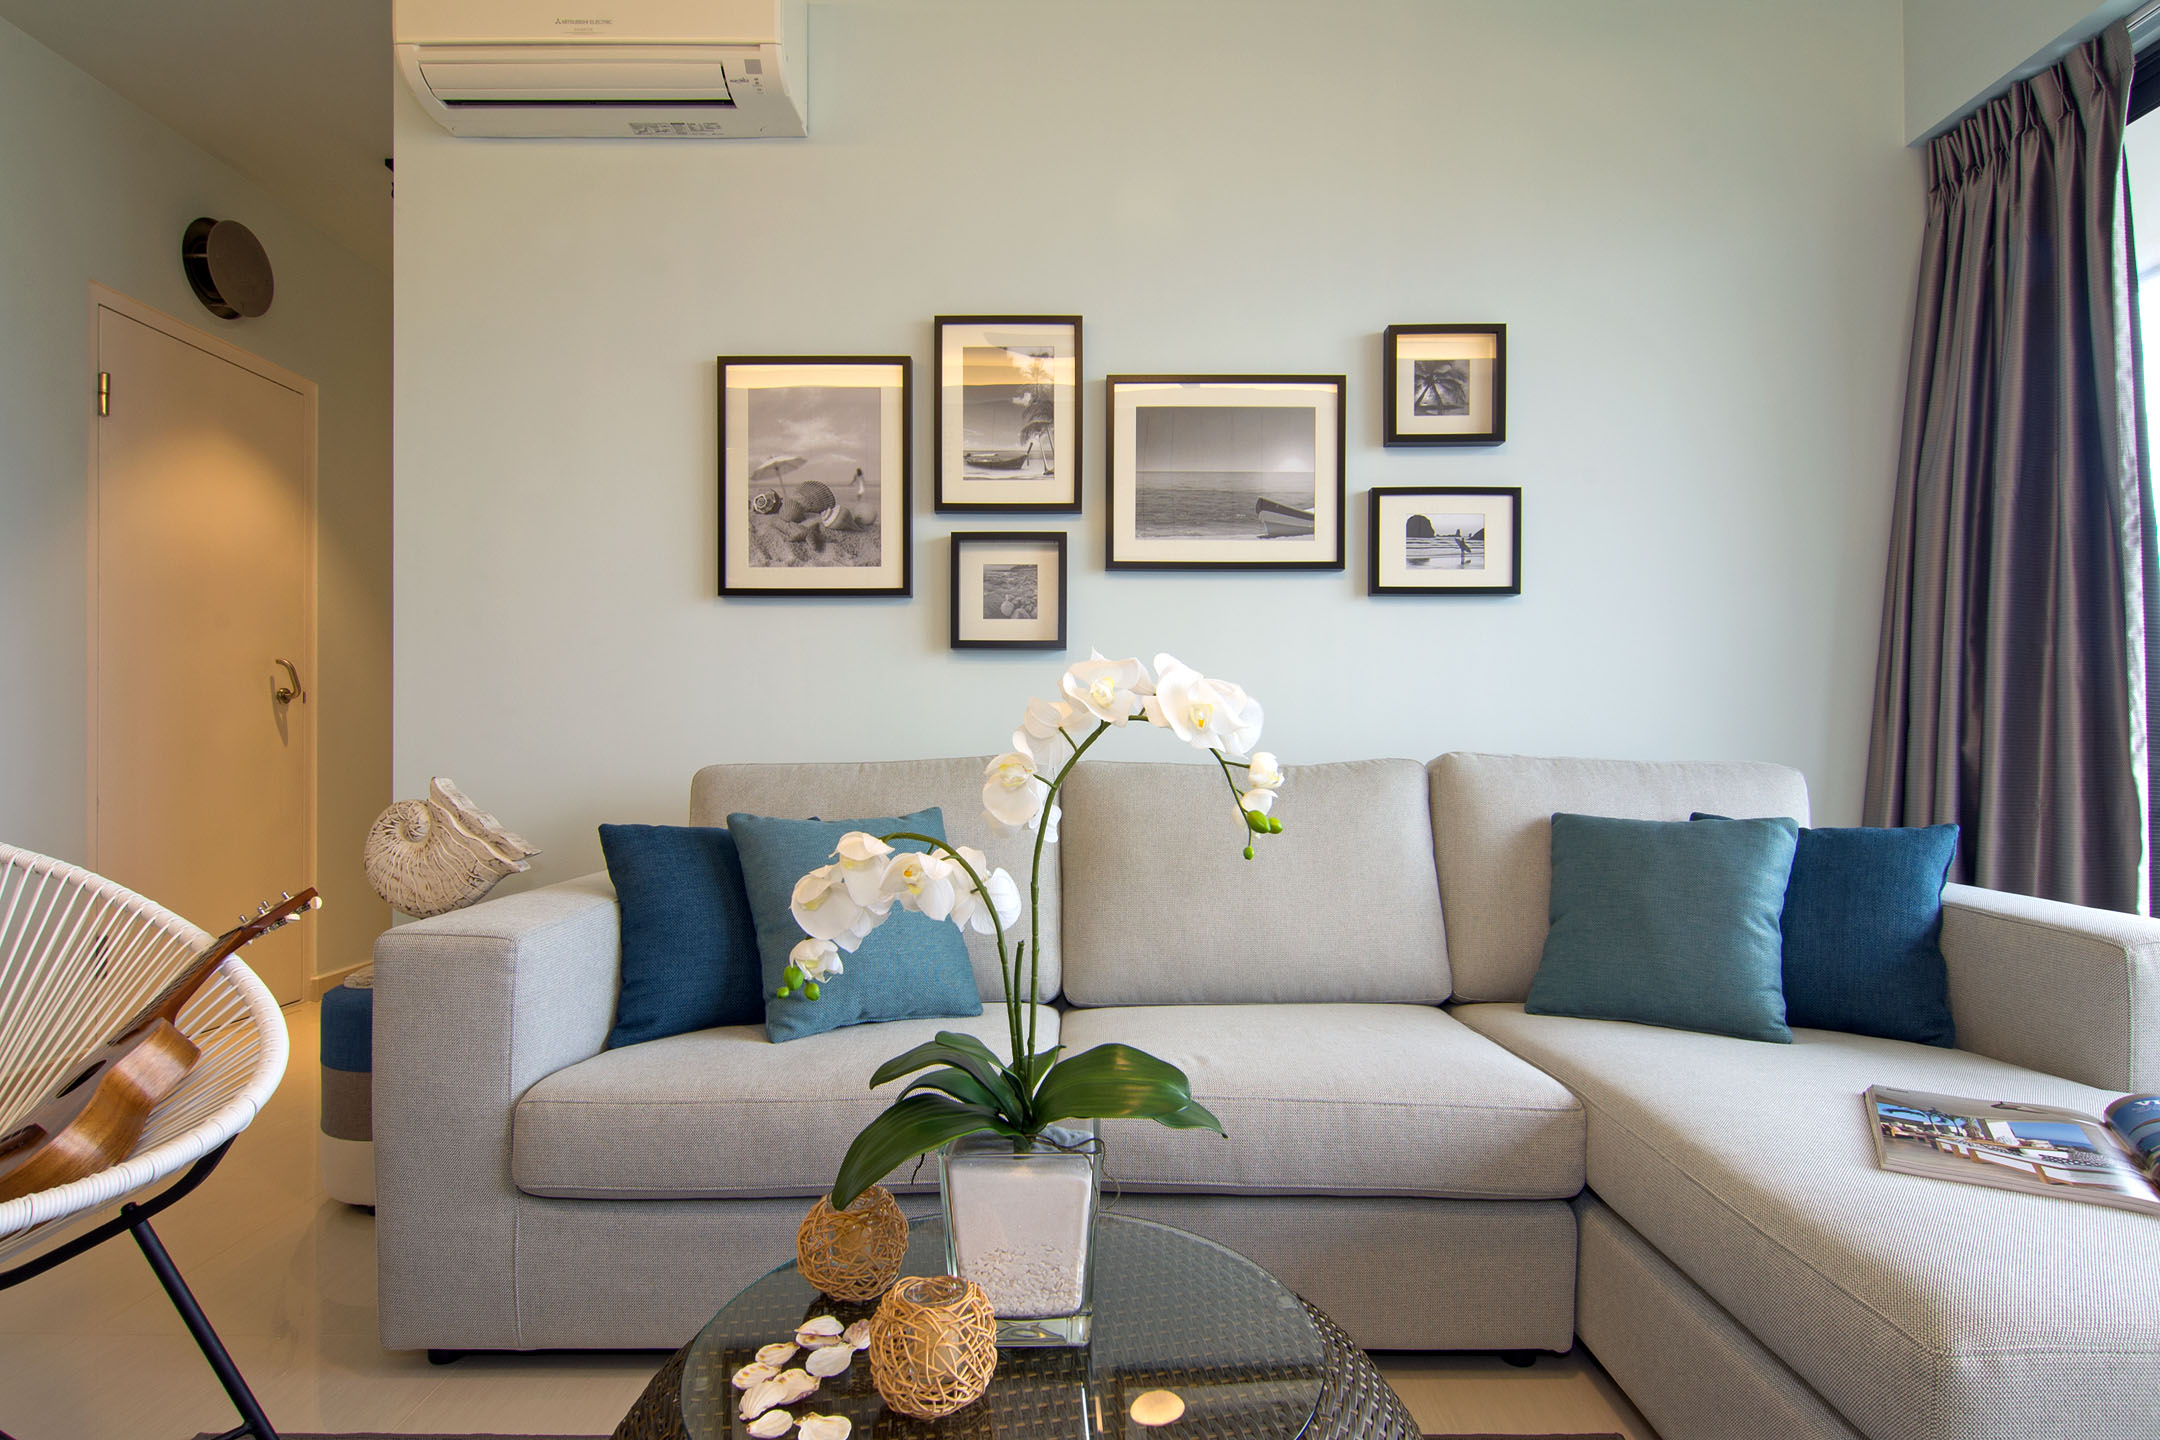 Beach house urban apartment in Singapore by Vievva Designers-07